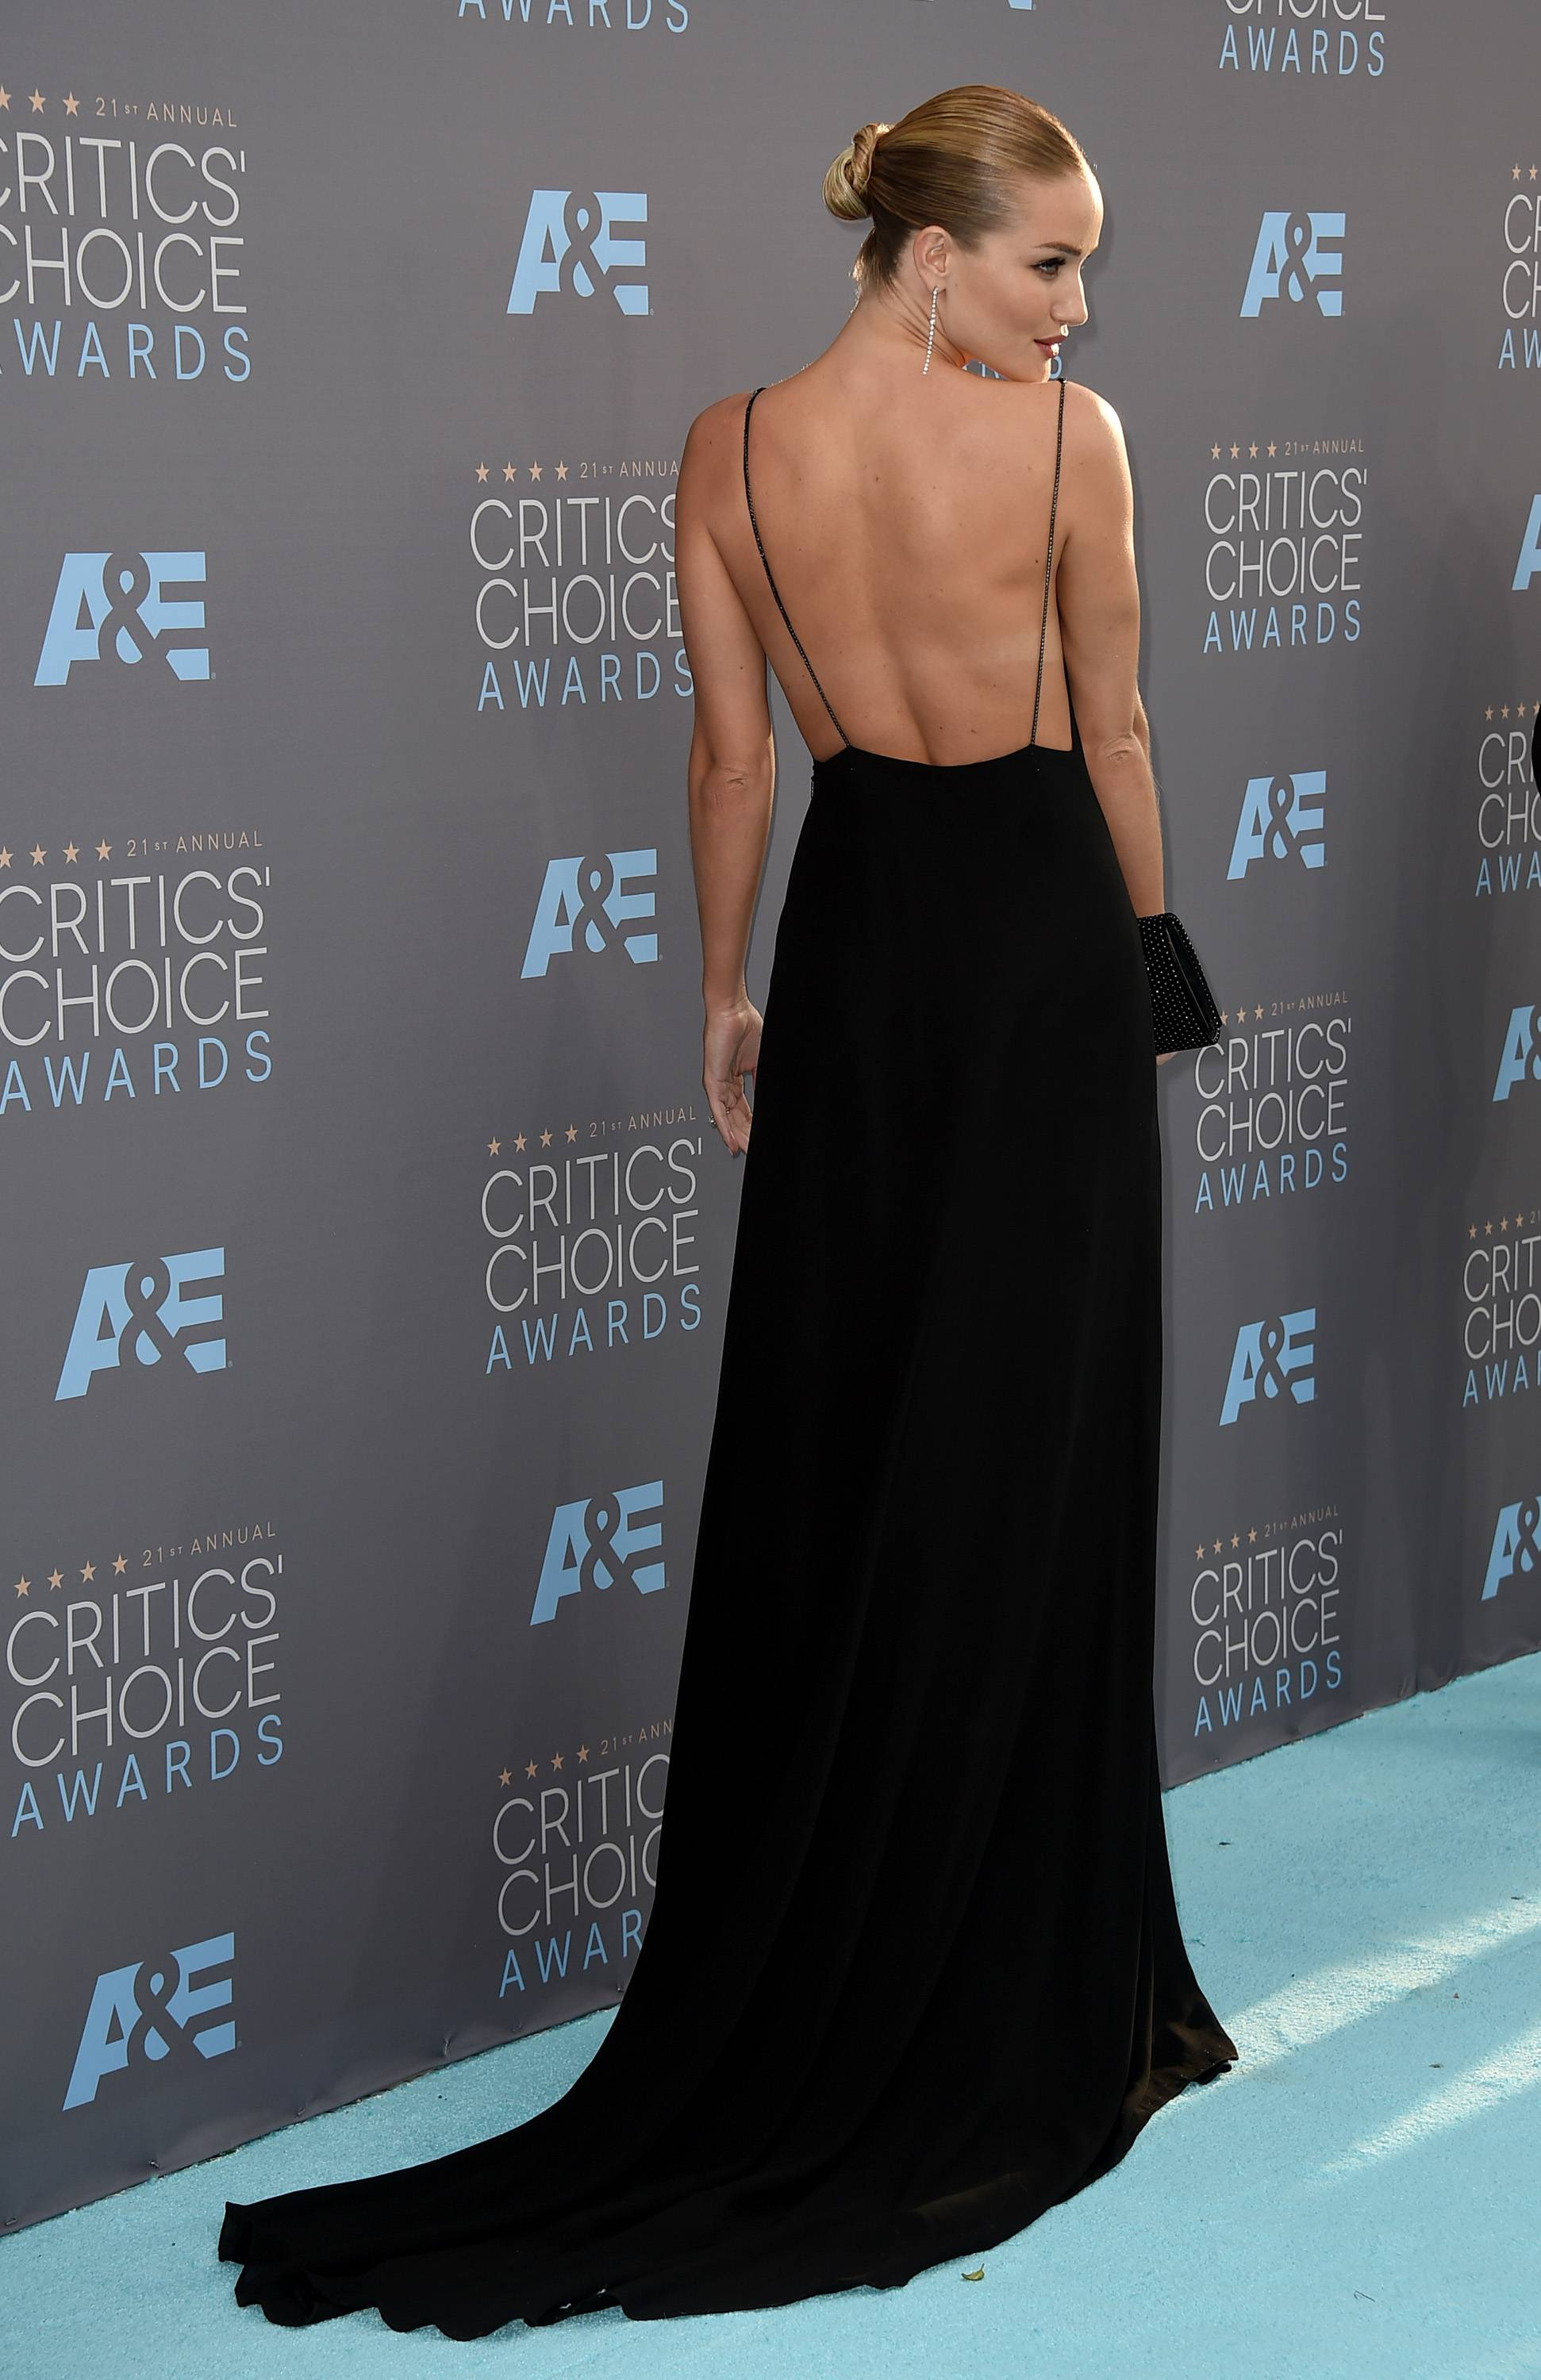 Rosie Huntington-Whiteley arrives at the 21st annual Critics' Choice Awards at the Barker Hangar on Sunday in Santa Monica, Calif.